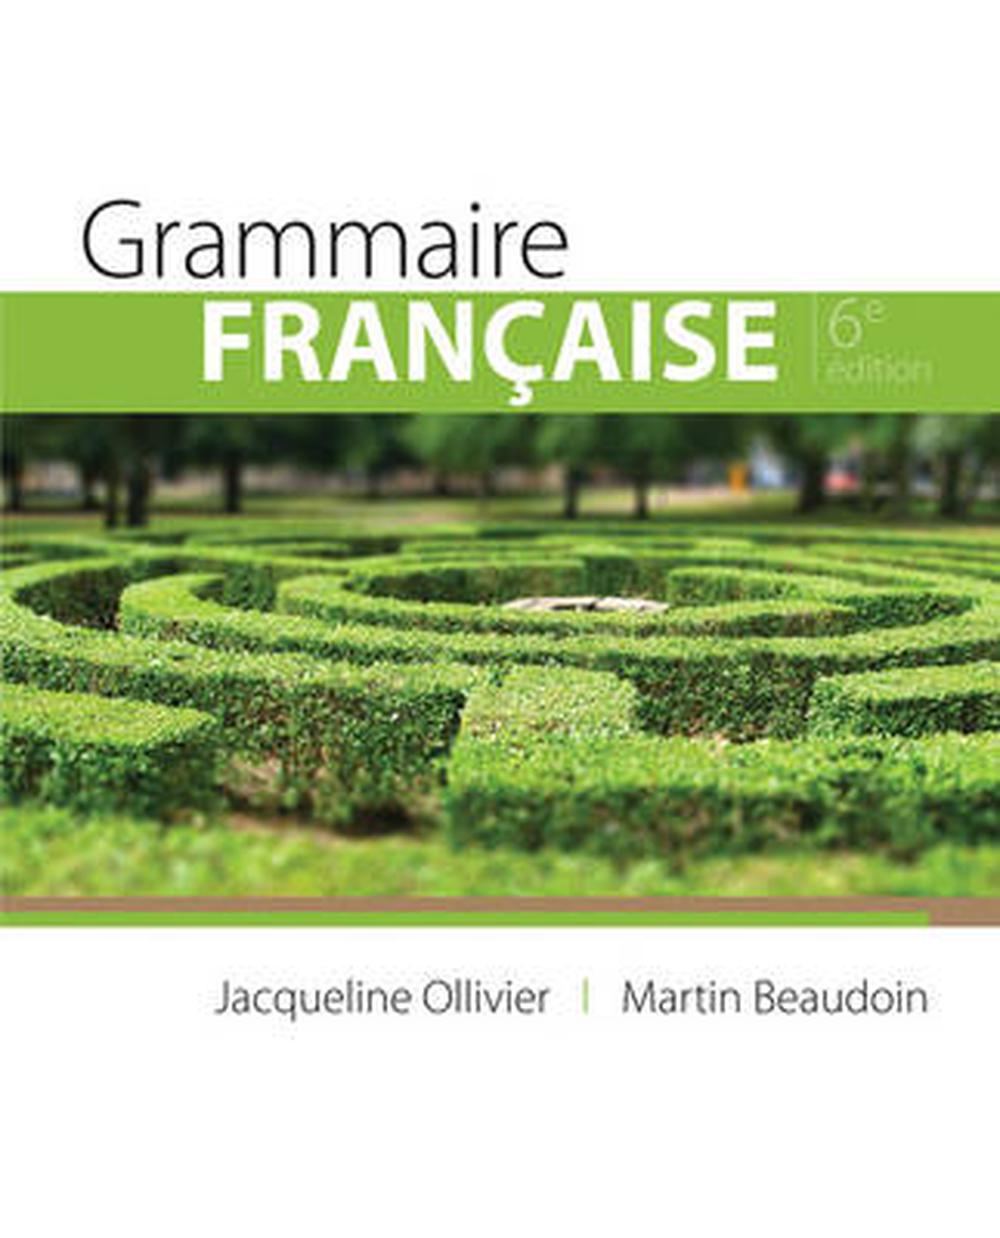 Grammaire Francaise, 6th Edition